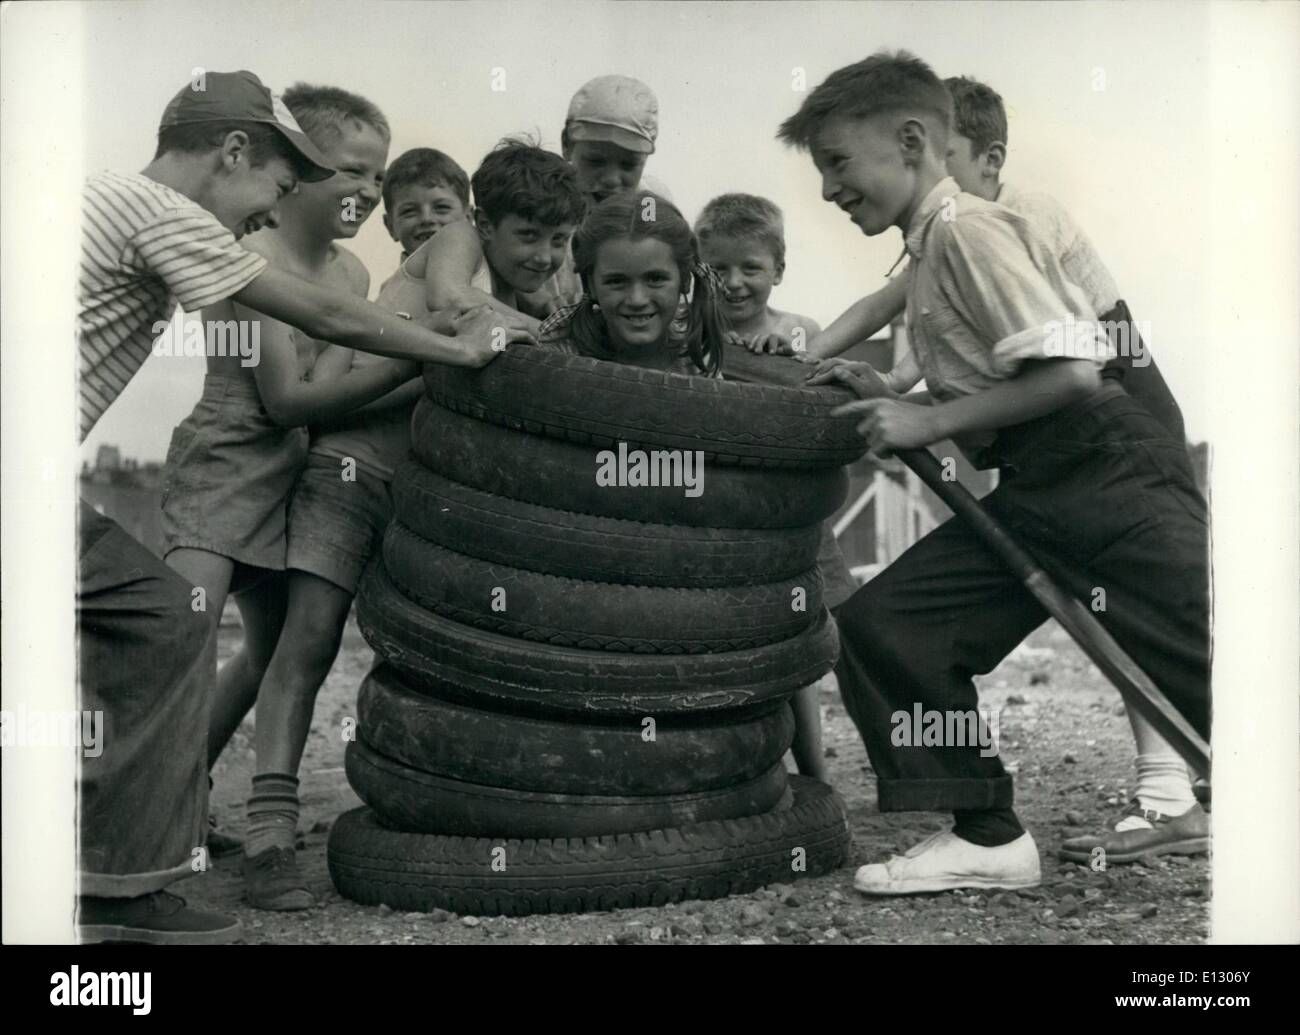 Feb. 26, 2012 - Old motor tyres are among the favorite toys and its surprising the number of games the kids invent with them. Here they use one of the girls, Anne Tatnell, as a Totem pole, and she seems to enjoy it. - Stock Image